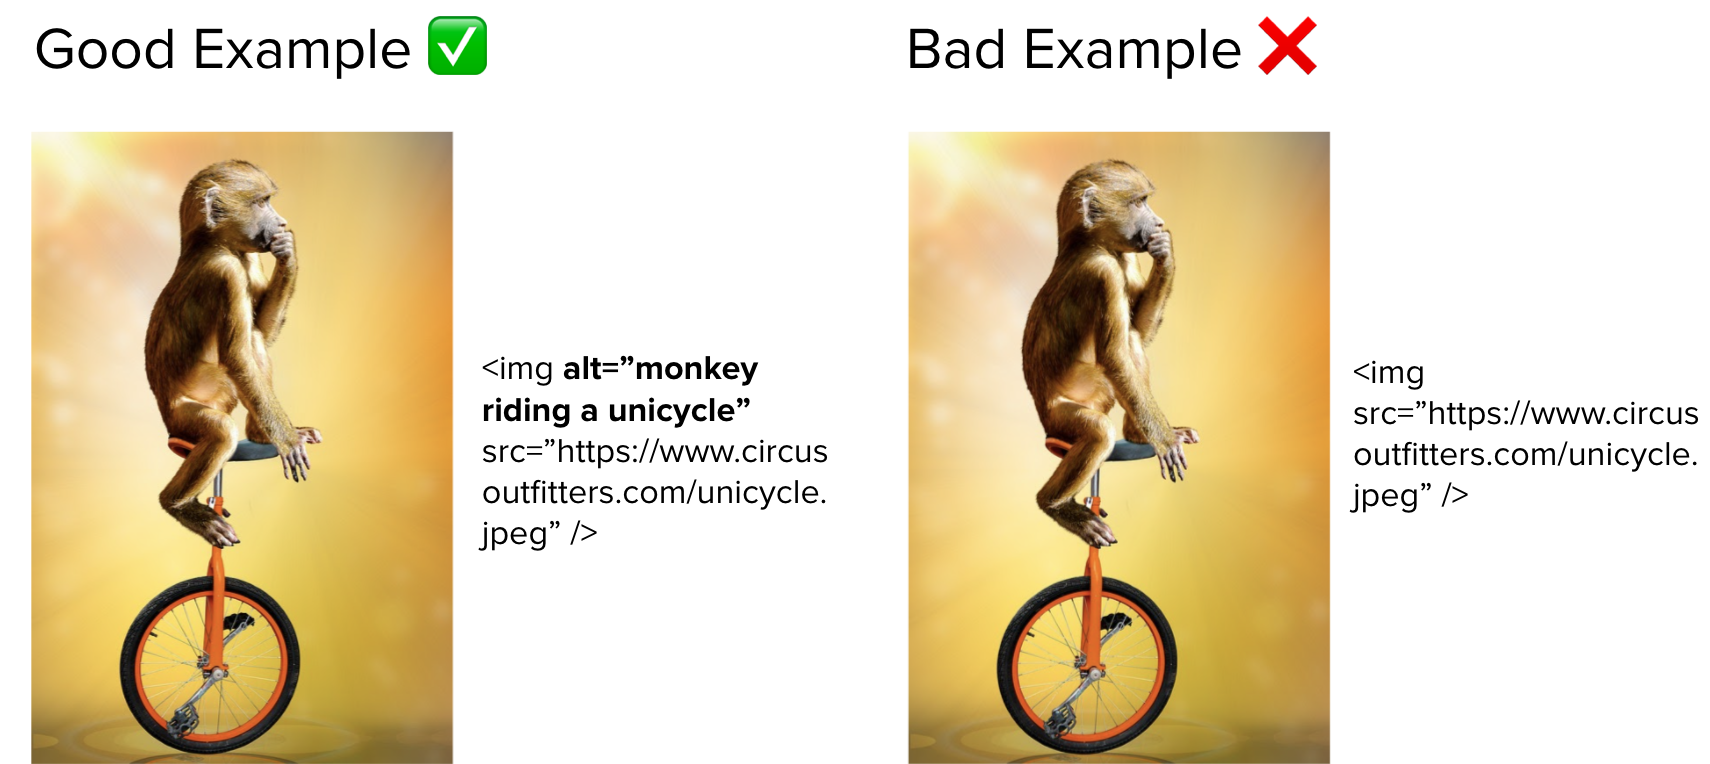 Comparison of two images showing how to use alt text to describe an image